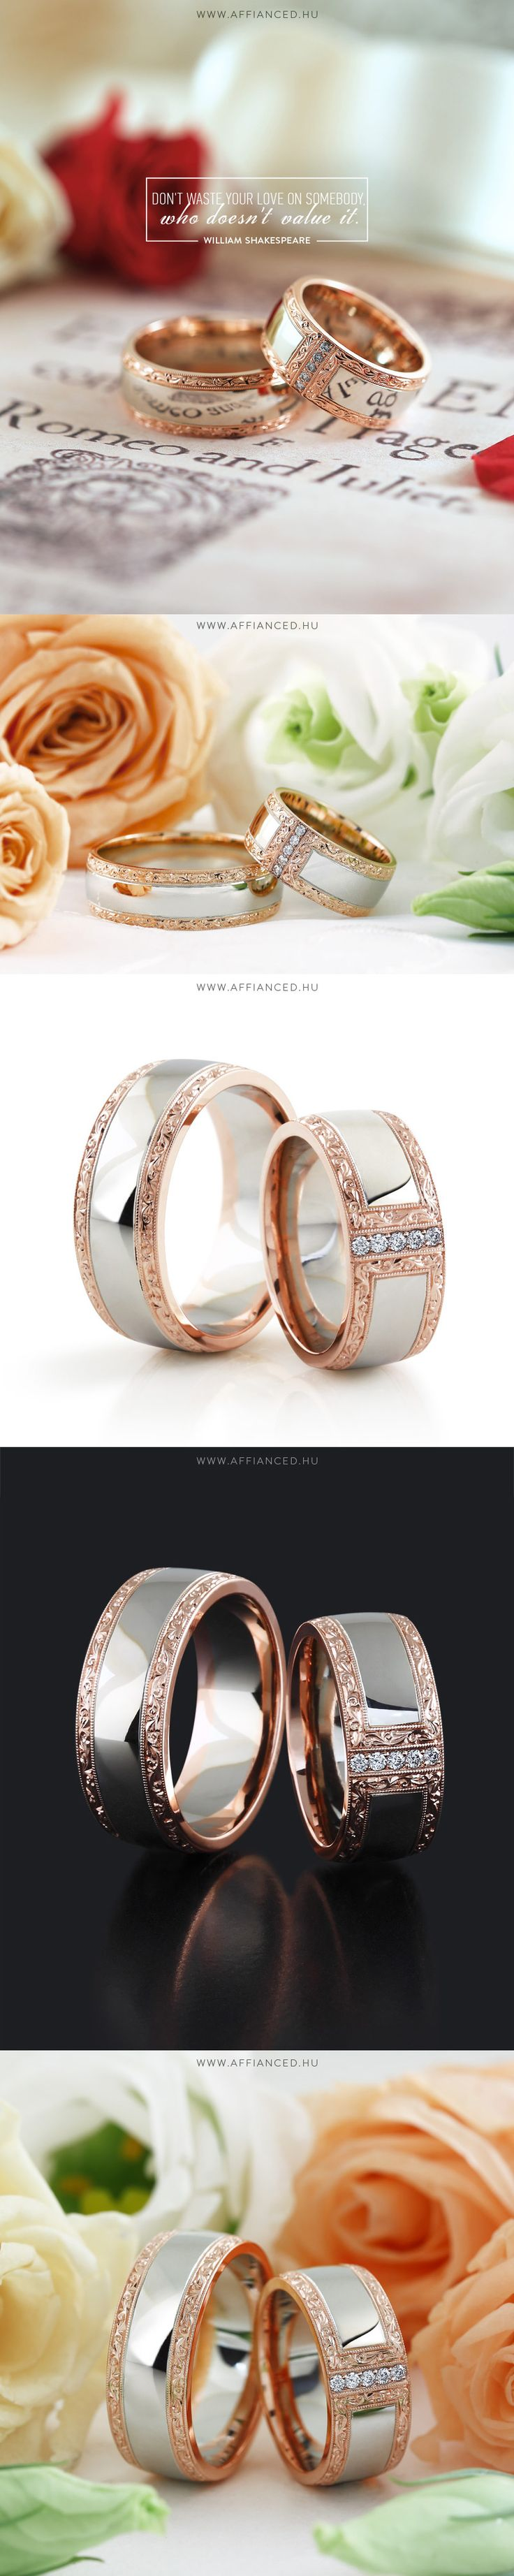 Barocco Bold №6 - wedding rings - White and rose gold wedding rings with handmade engraving and small diamonds.